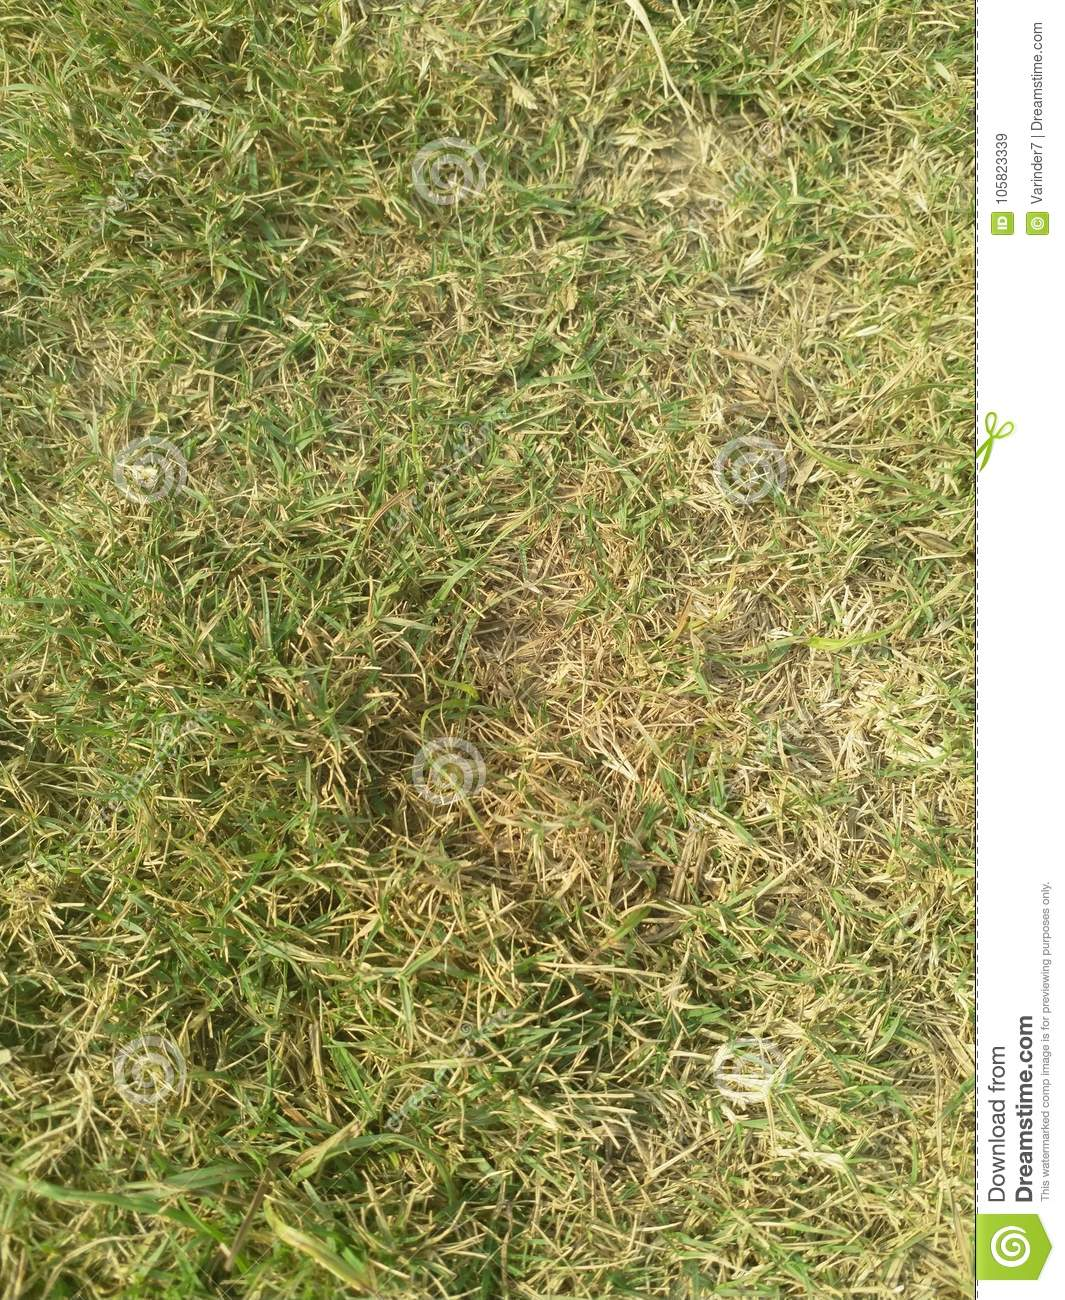 Clean green grass in high resolution